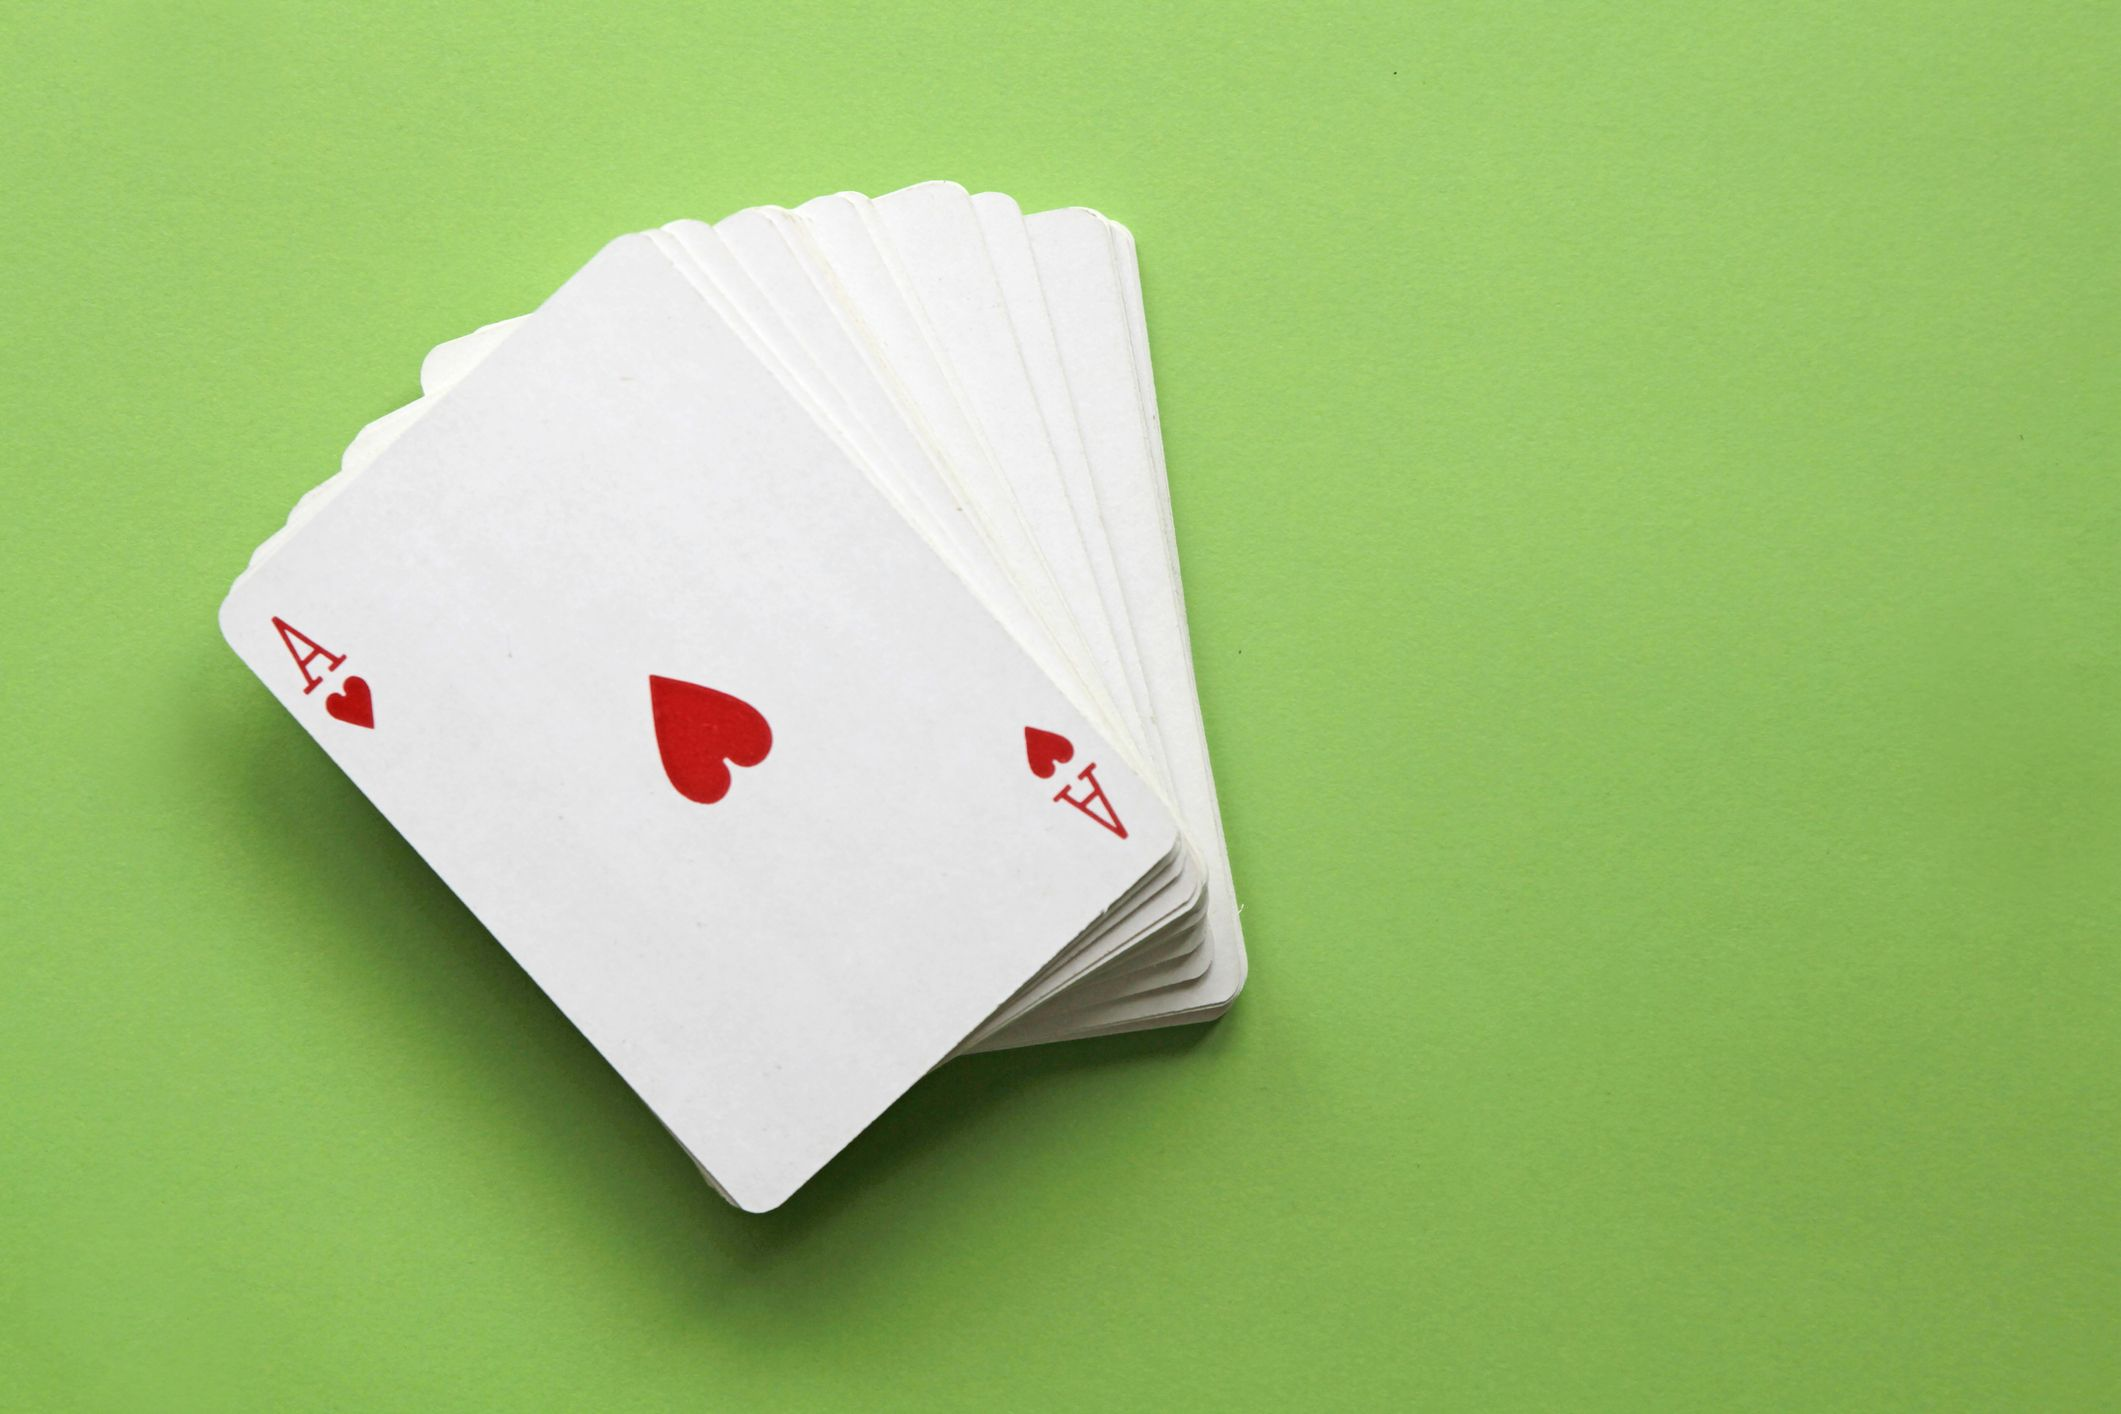 betting card games for 2 players